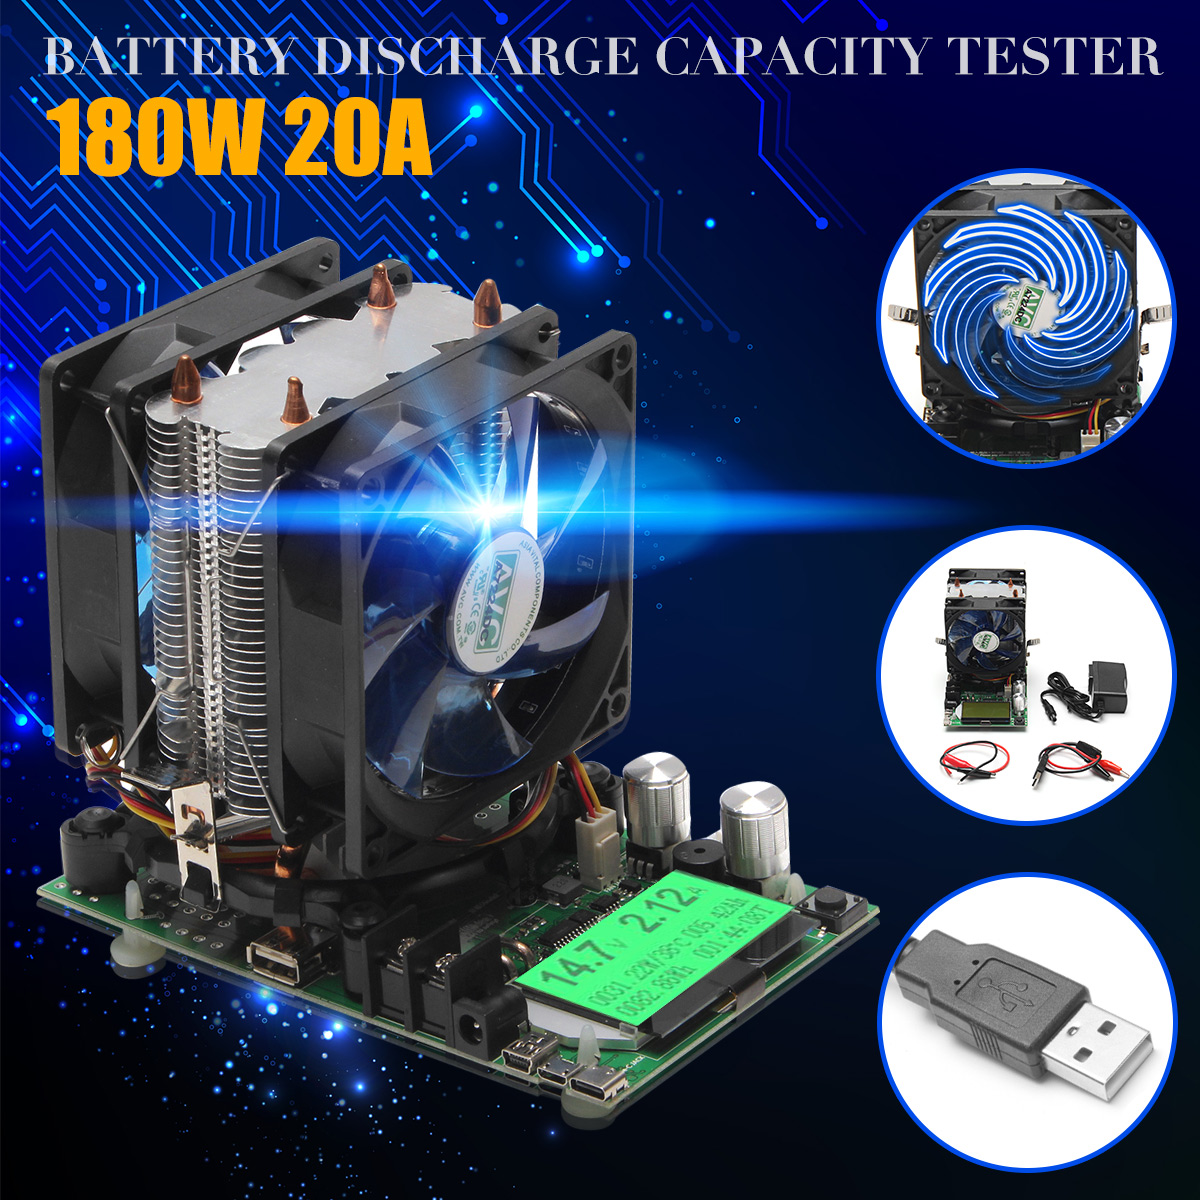 Professional 200V 20A 180W adjustable Constant Current Electronic Load Battery Discharge Capacity Tester Meter Lead-acid lithium battery capacity testing electronic load nicd and nimh mobile power supply tester tec 06 lithium battery